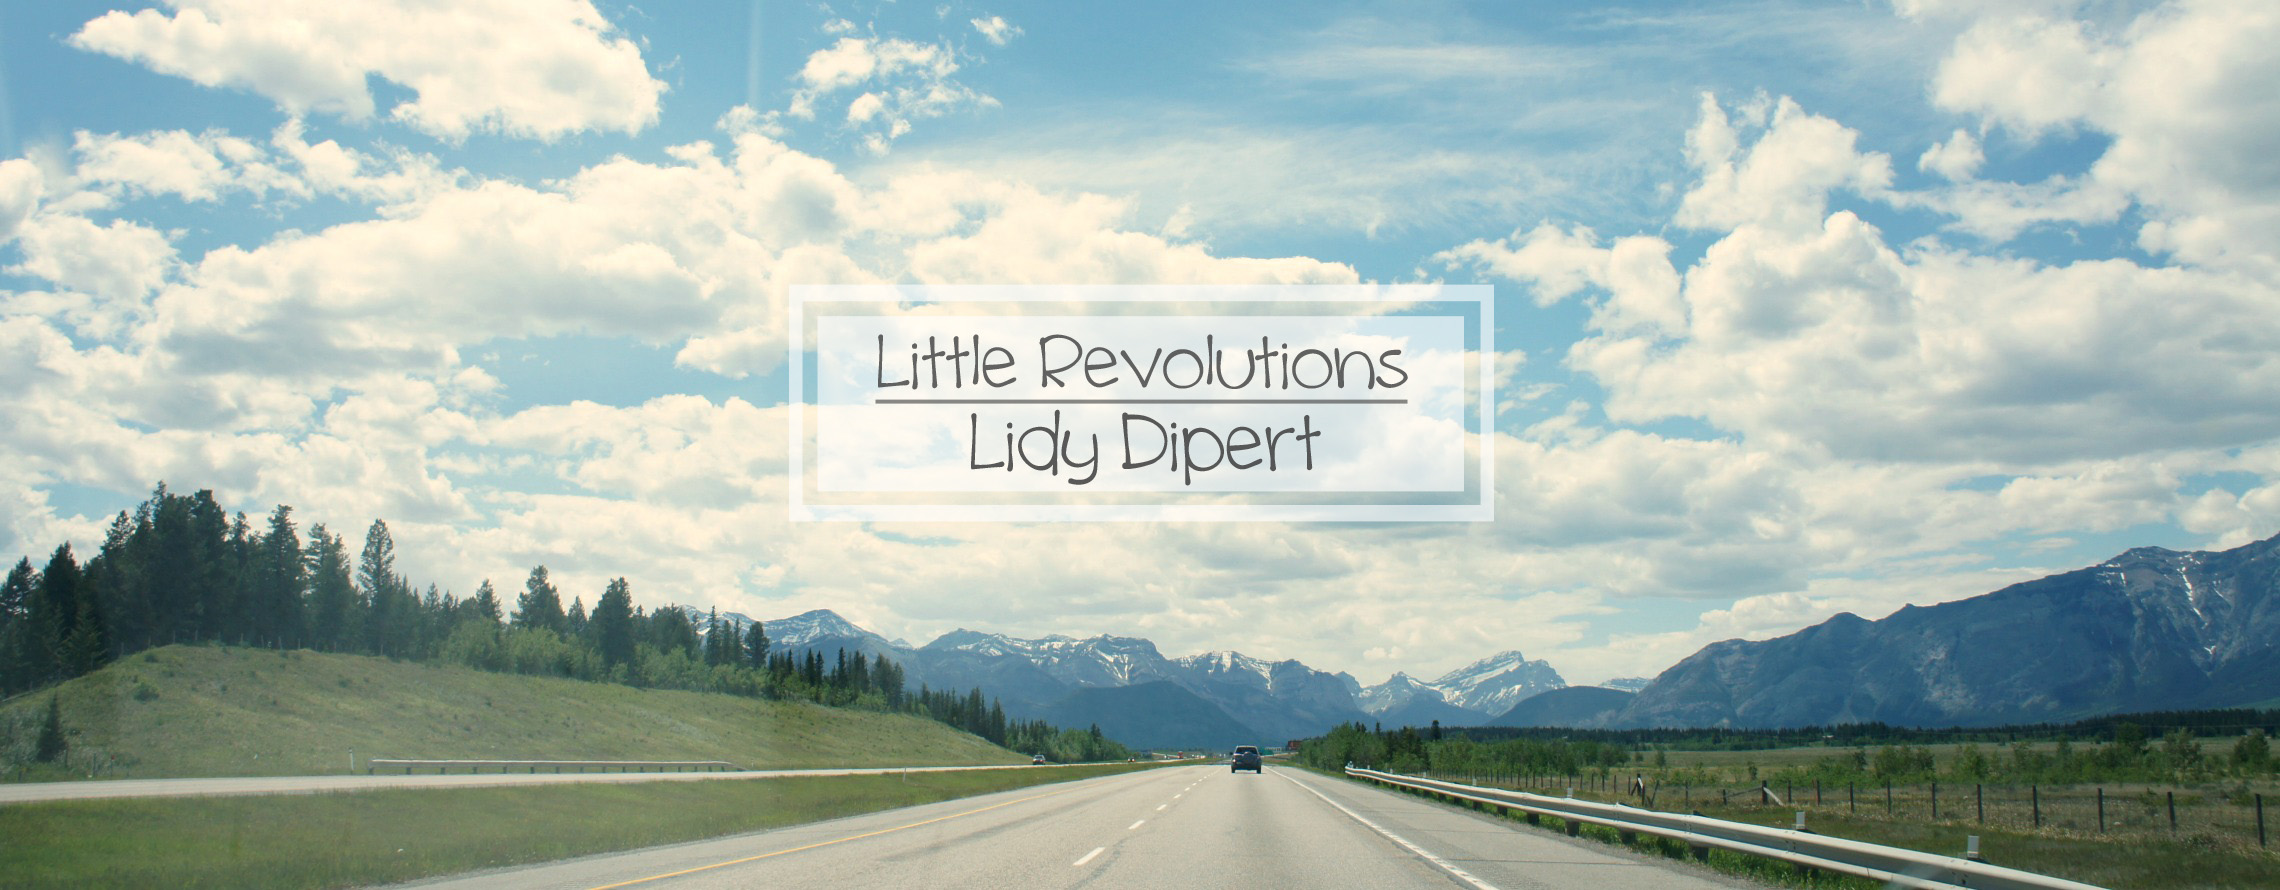 Little Revolutions: Lidy Dipert